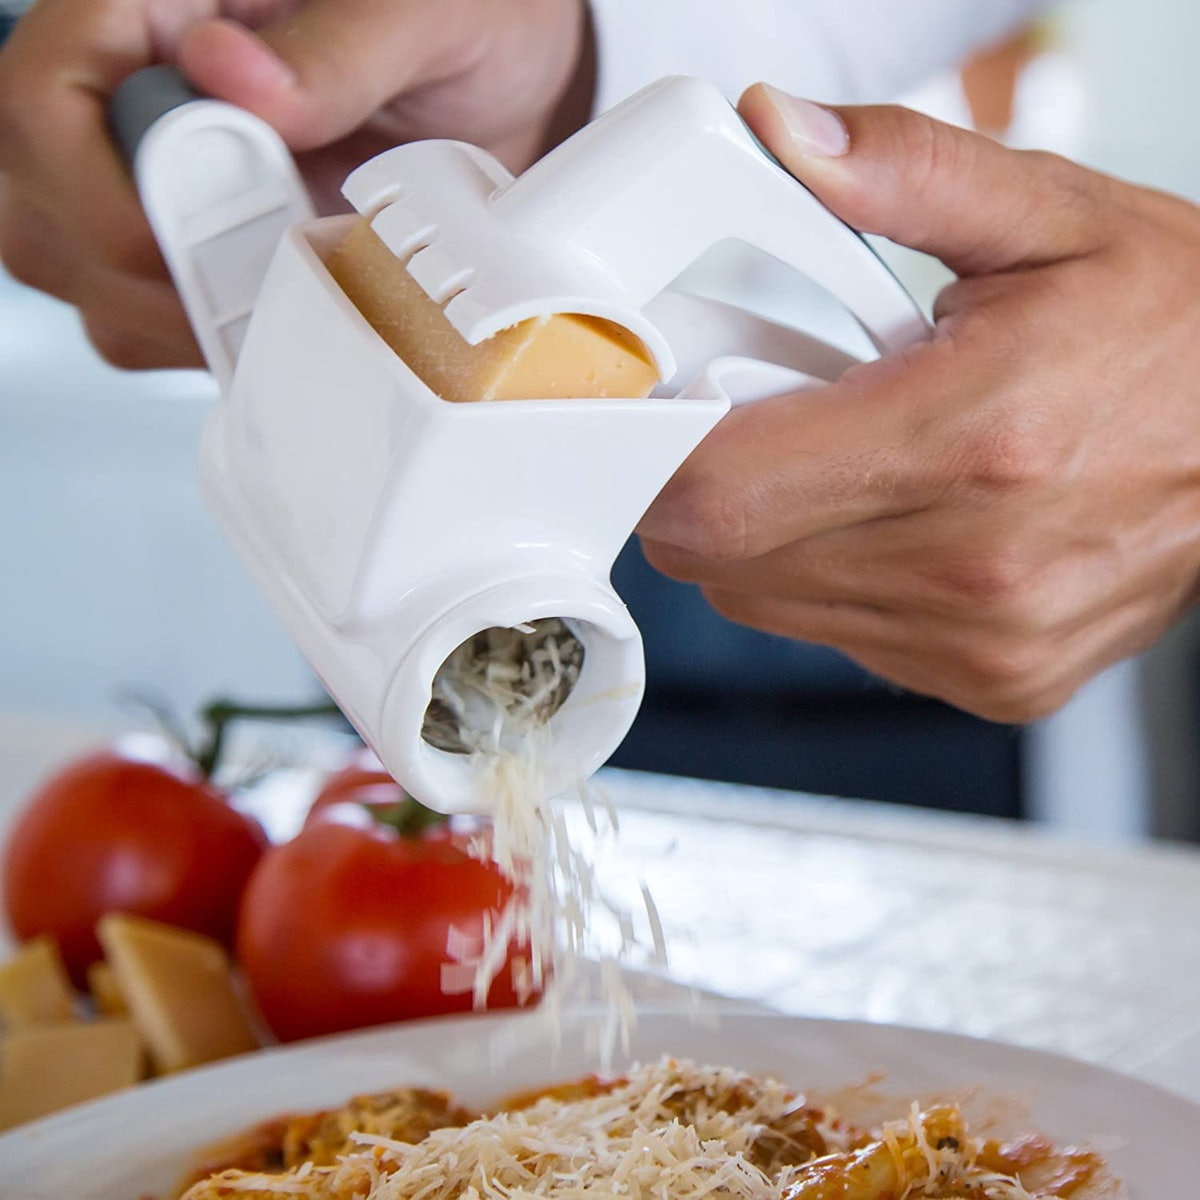 Zyliss Classic Rotary Cheese Grater